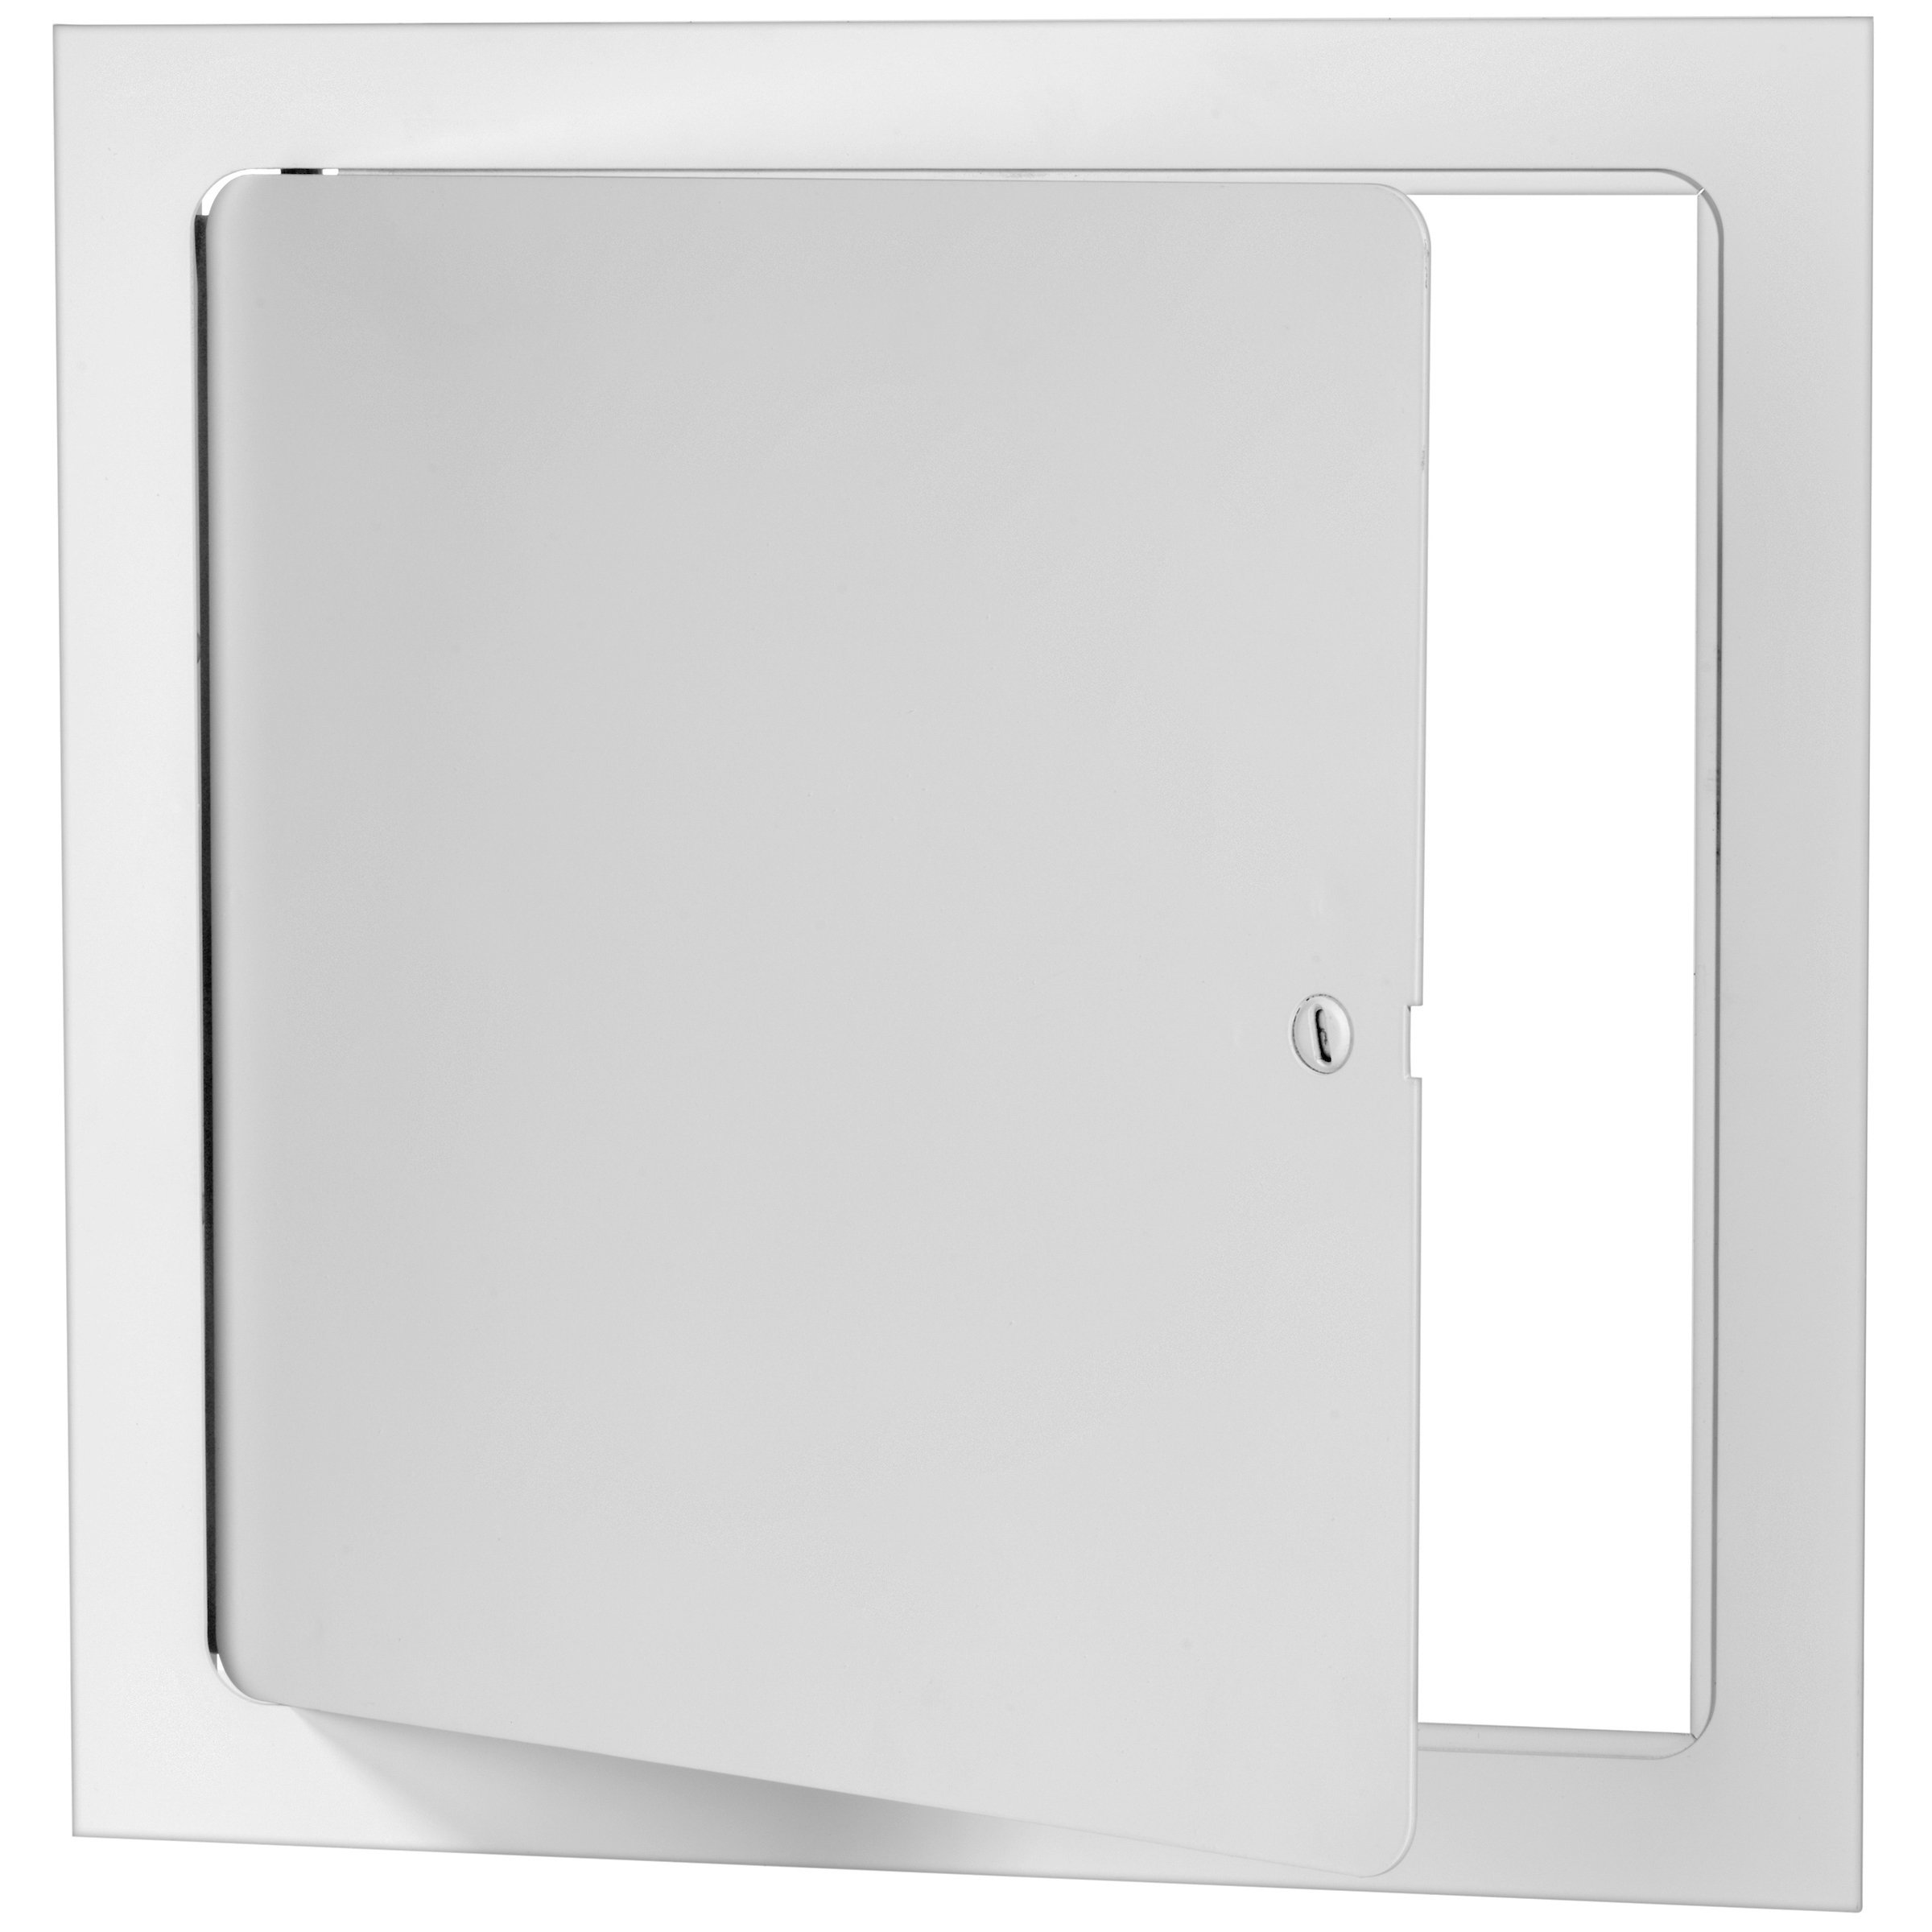 Premier 5000 Series Commercial Grade Steel Access Door, 14 x 14 Flush Universal Mount, White (Screwdriver Latch)